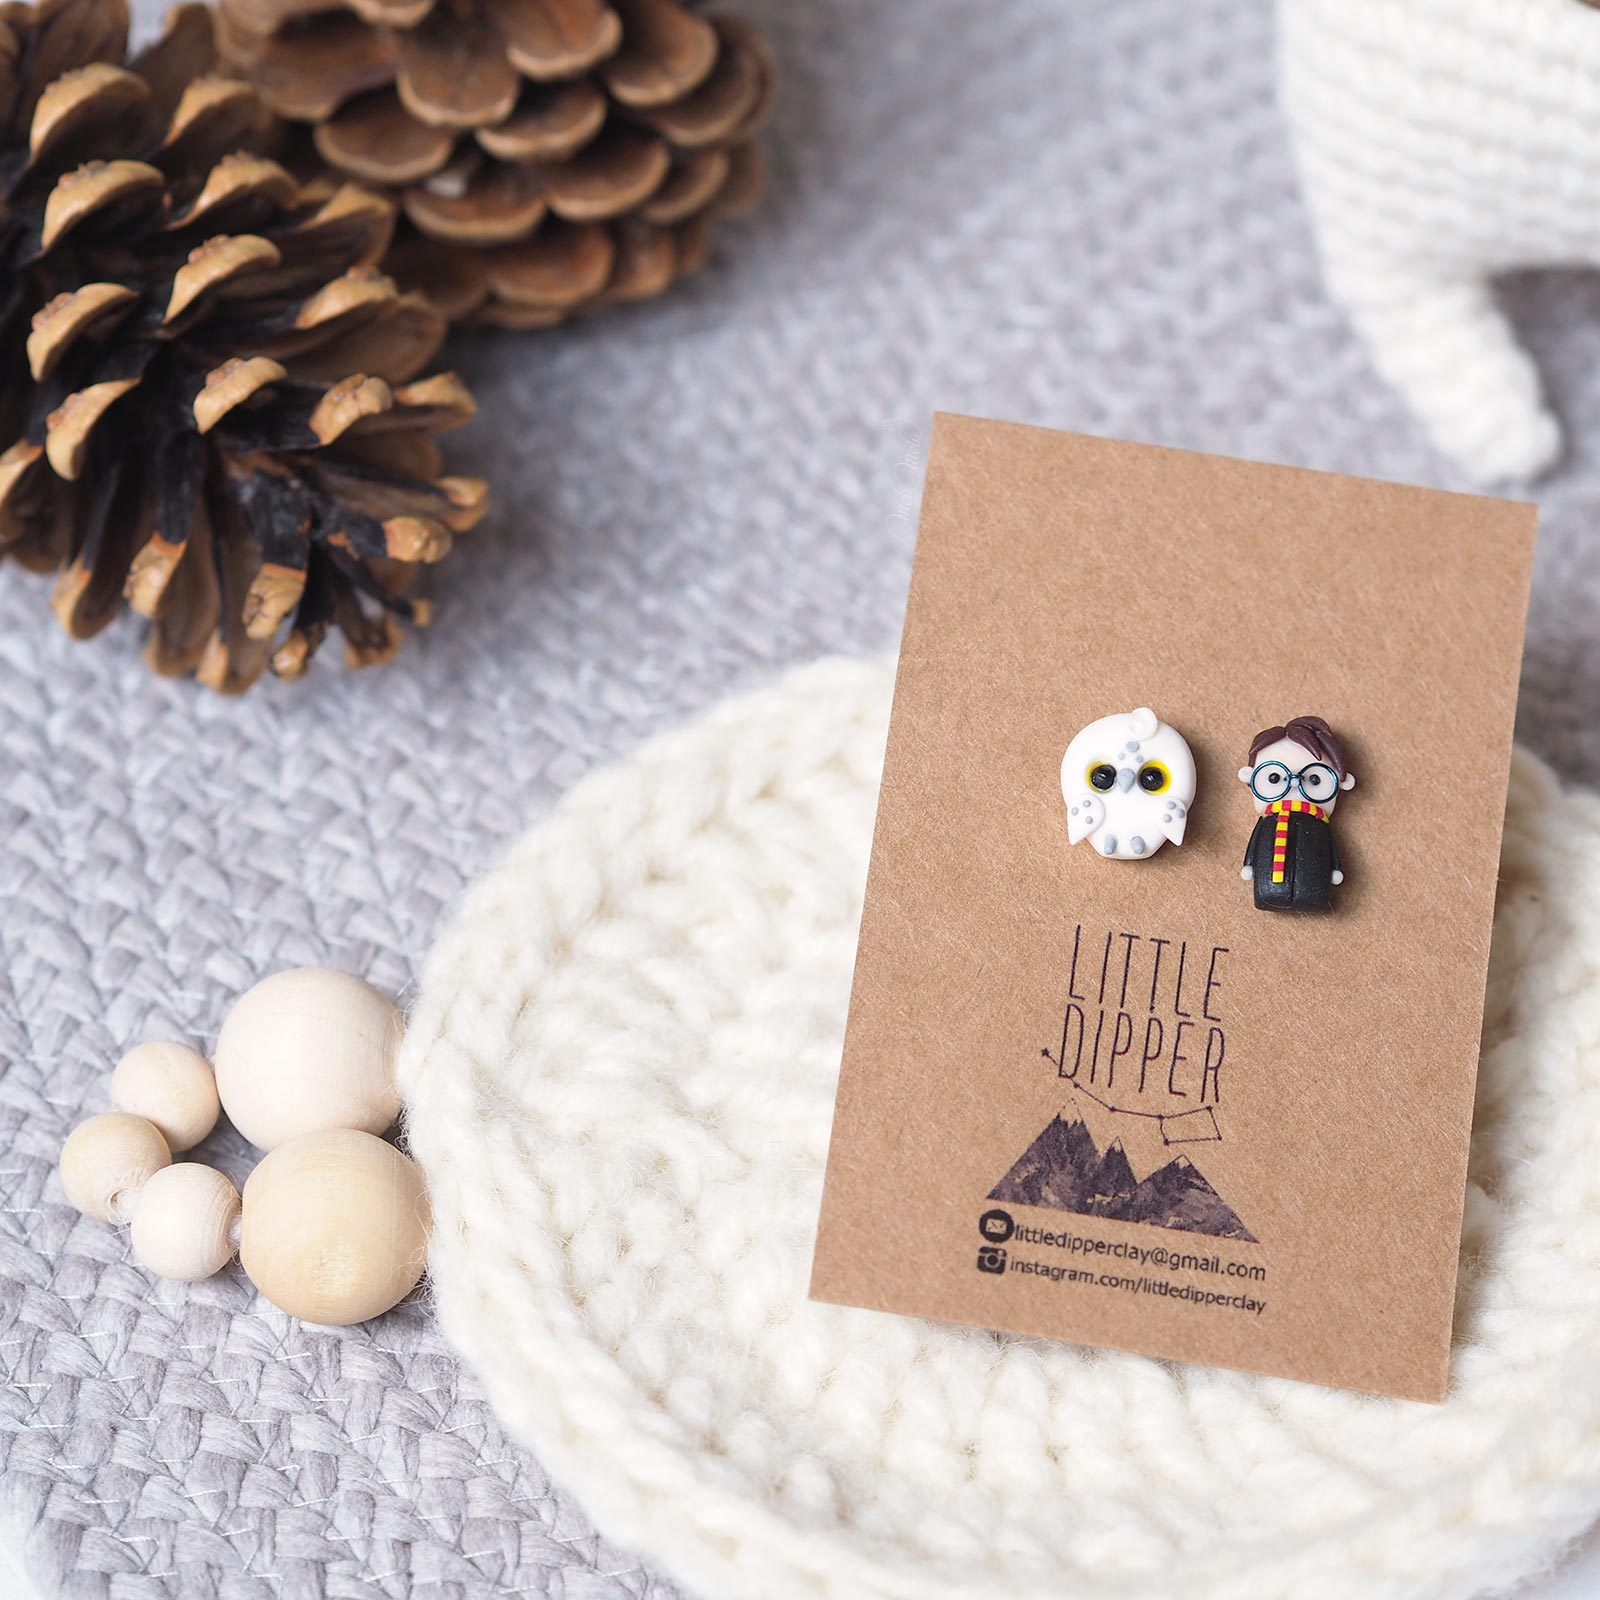 pins Harry Potter Hedwig Little Dipper Clay snowy owl Little Dipper clay laboutiquedemelimelo